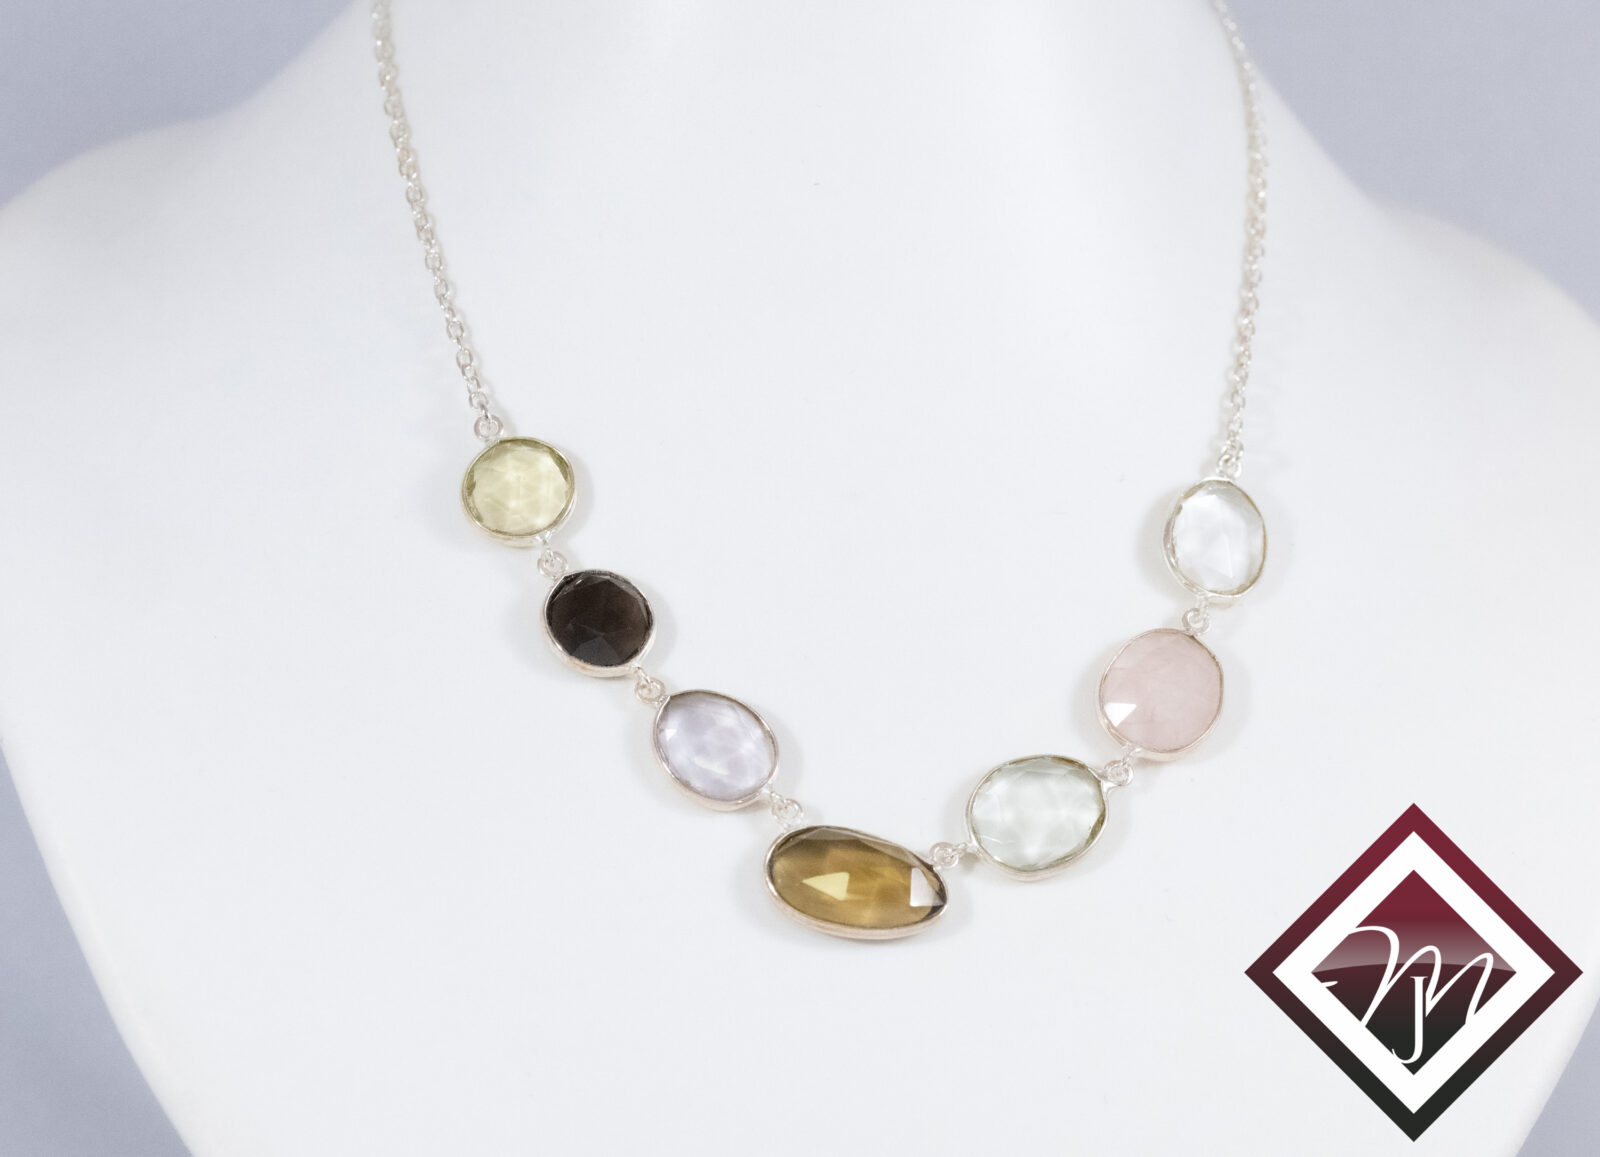 Necklace with multiple gemstones